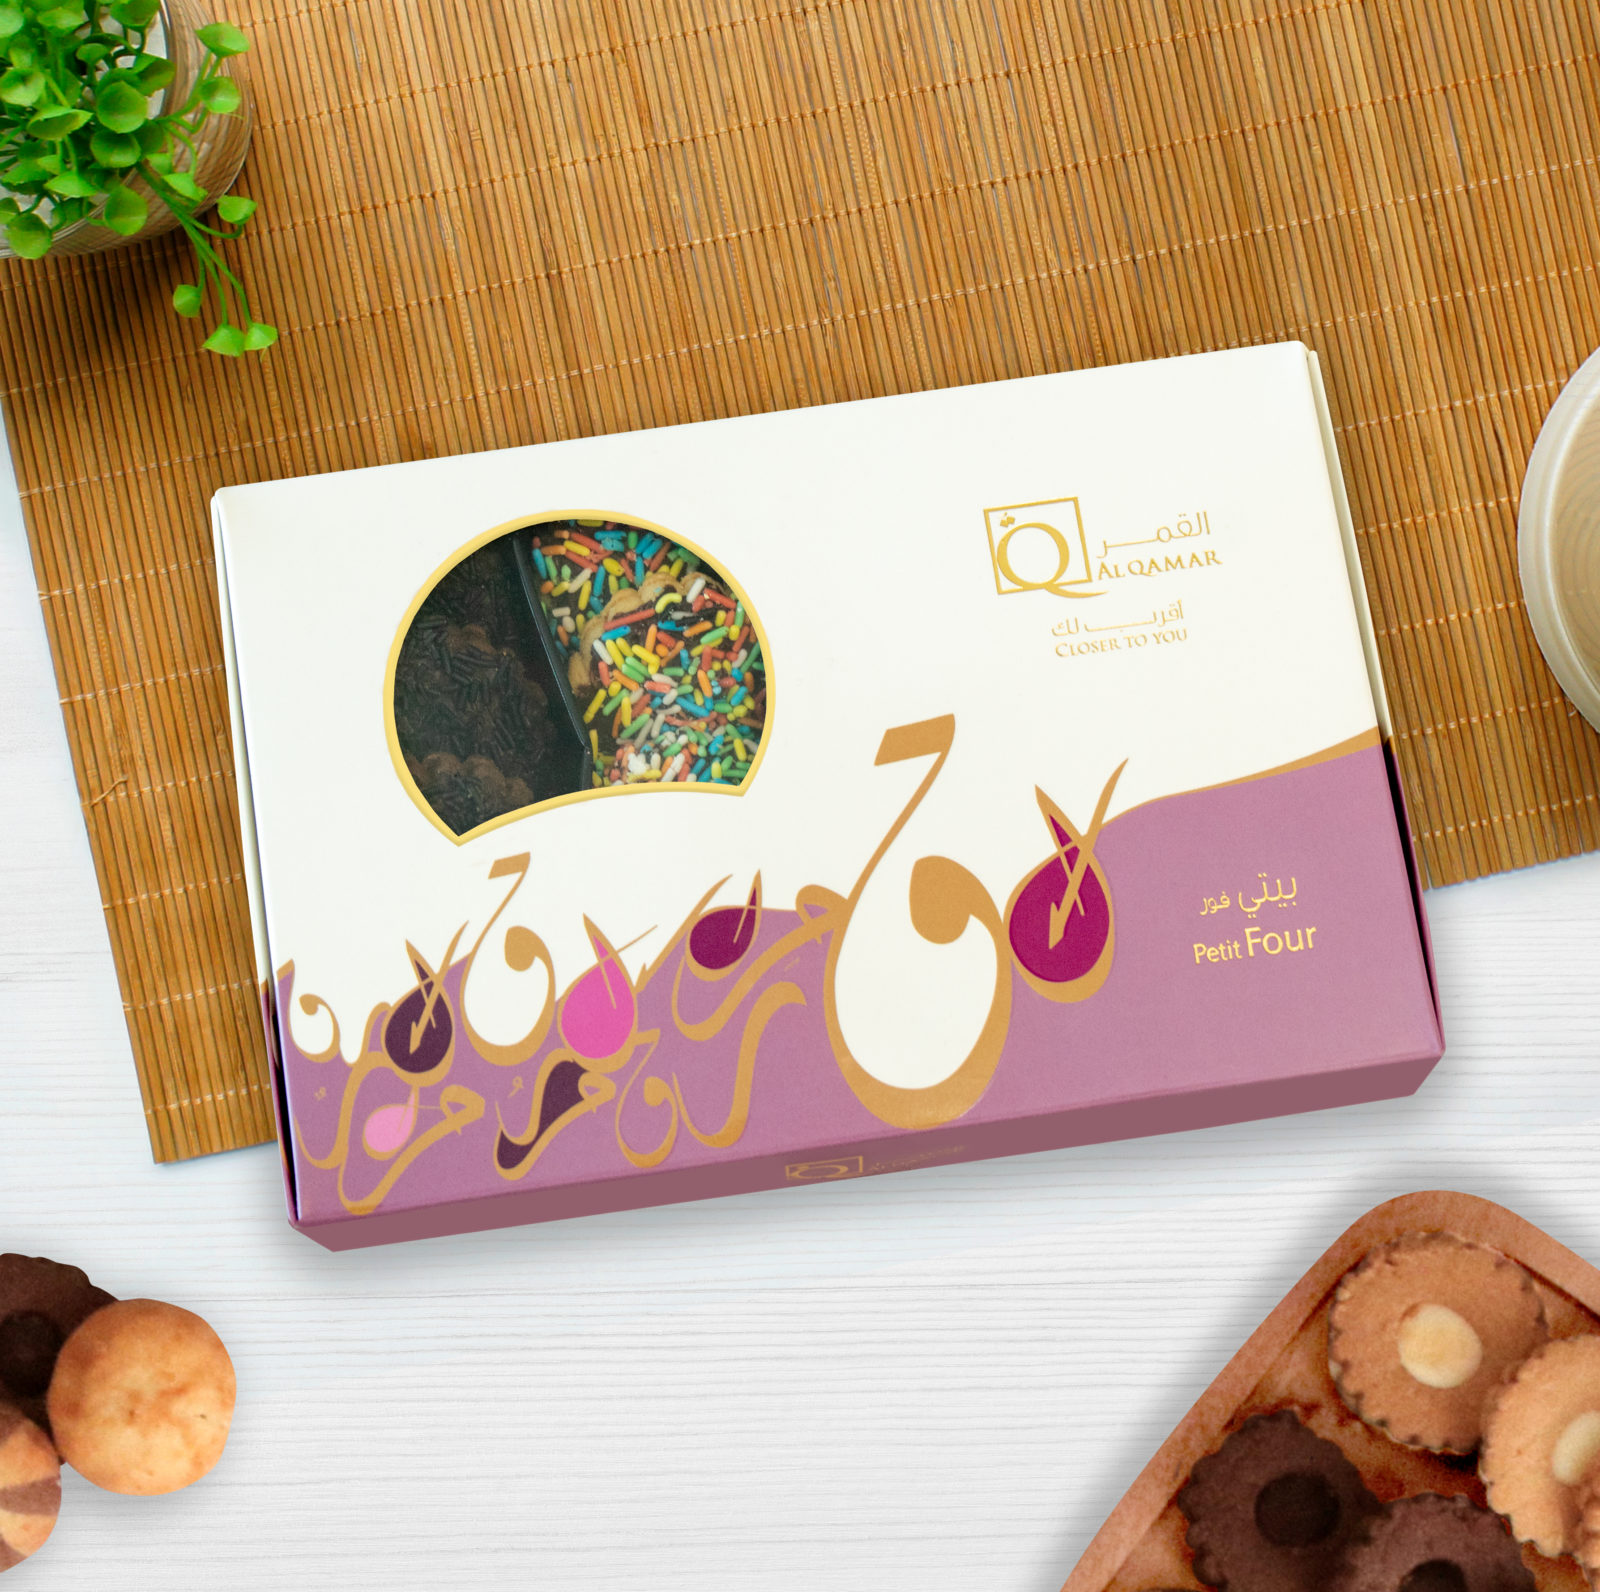 https://alqamarsweets.com/wp-content/uploads/2019/03/rebrand-packs-petit-four-e1554494851830.jpg